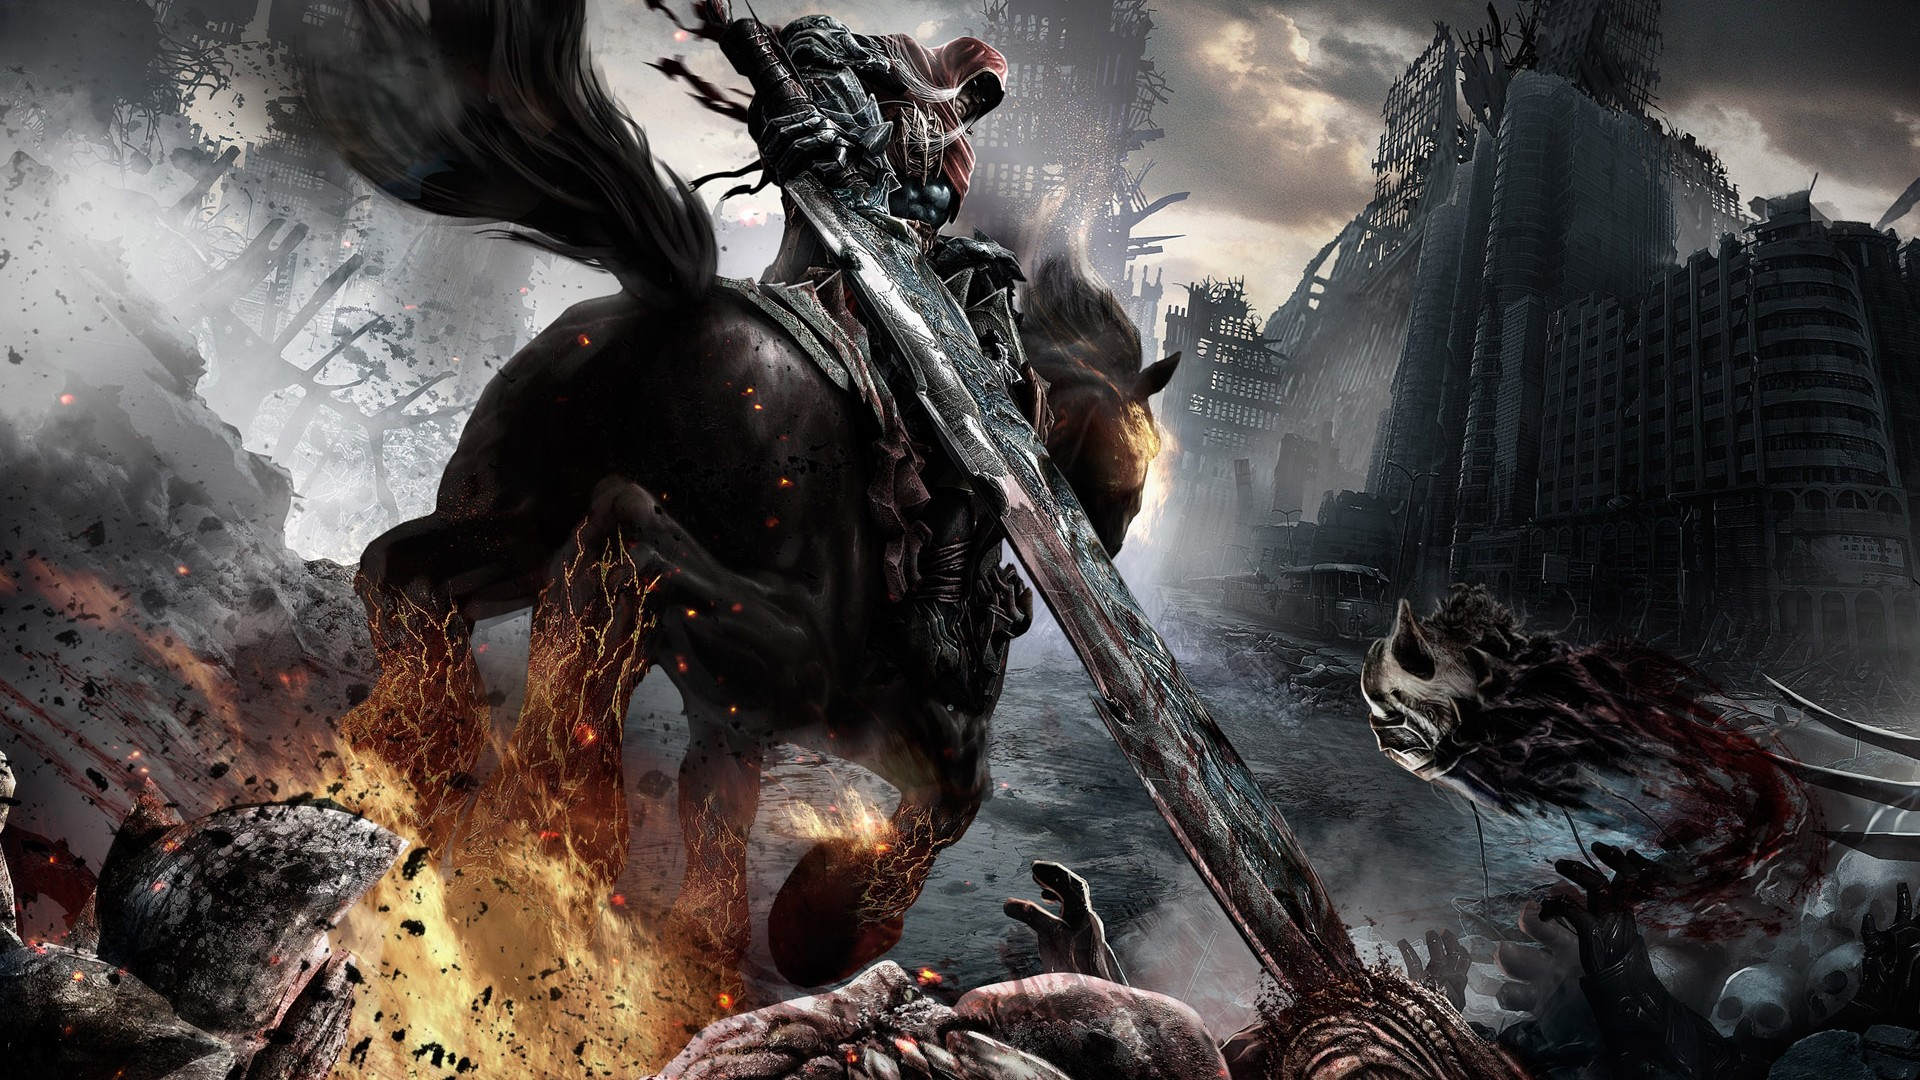 Awesome Video Game Wallpapers: Awesome High Resolution Video Game Wallpaper